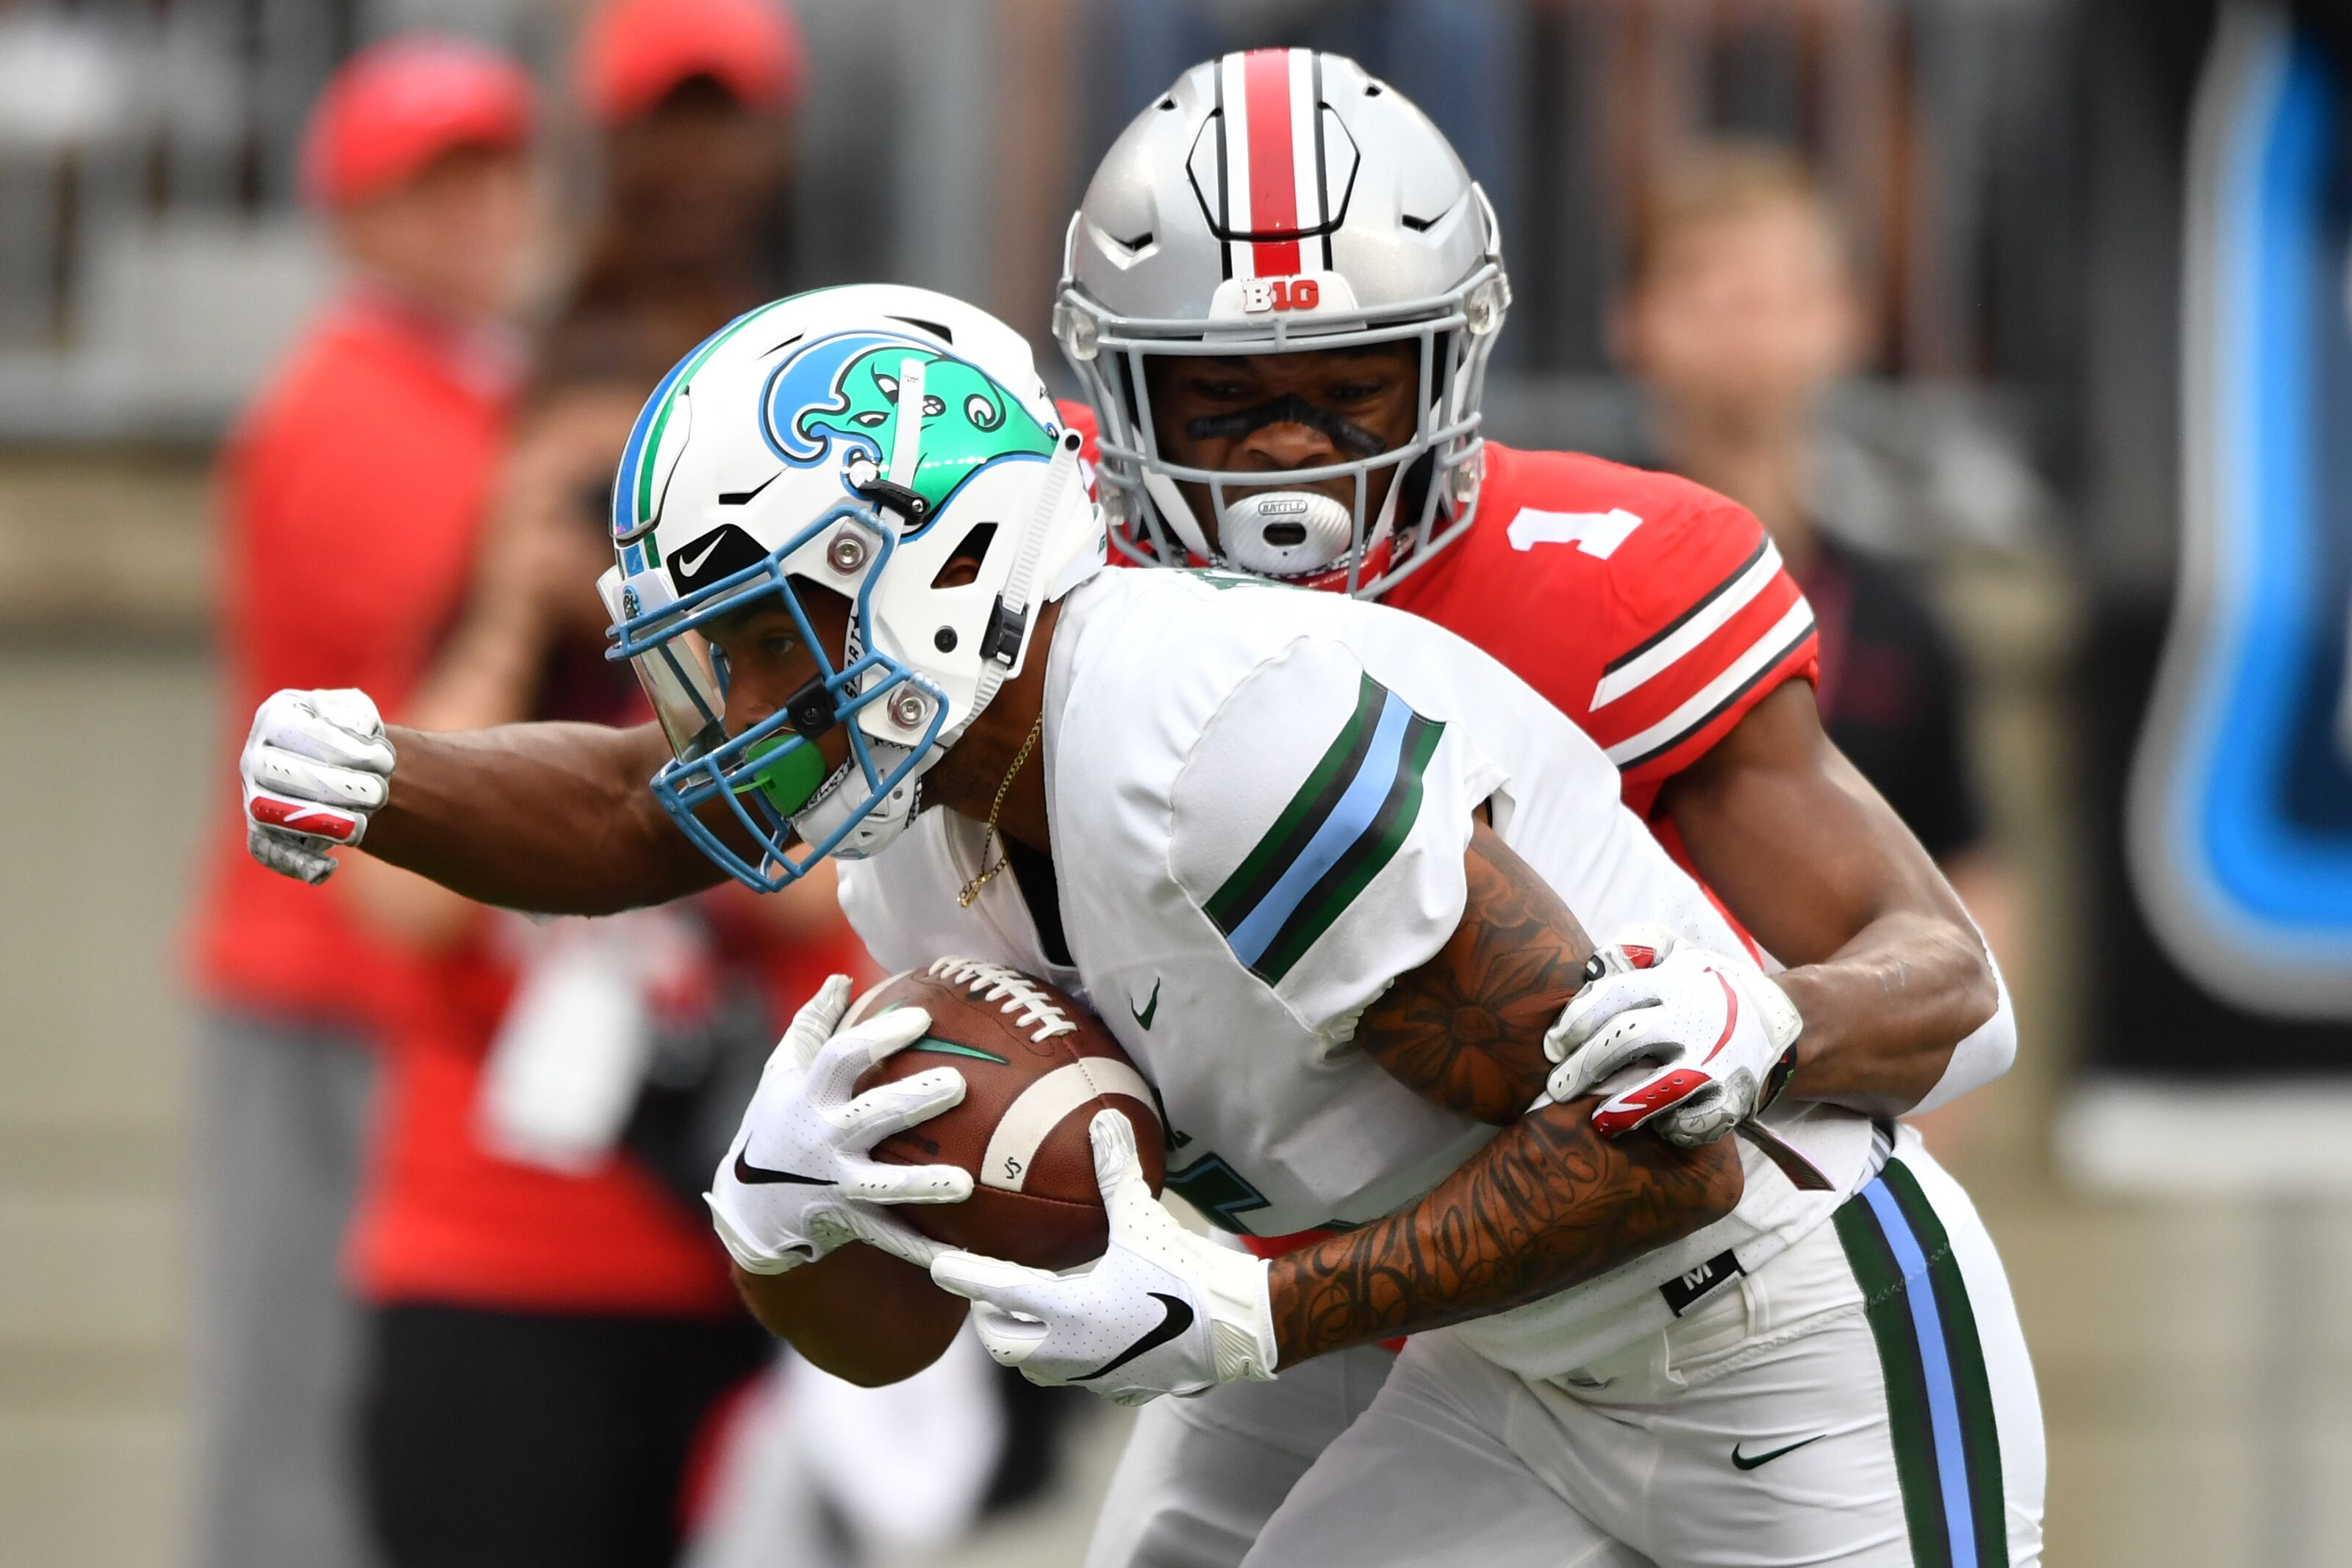 2020 NFL Draft: Can Jeffrey Okudah be the next great Ohio State DB?